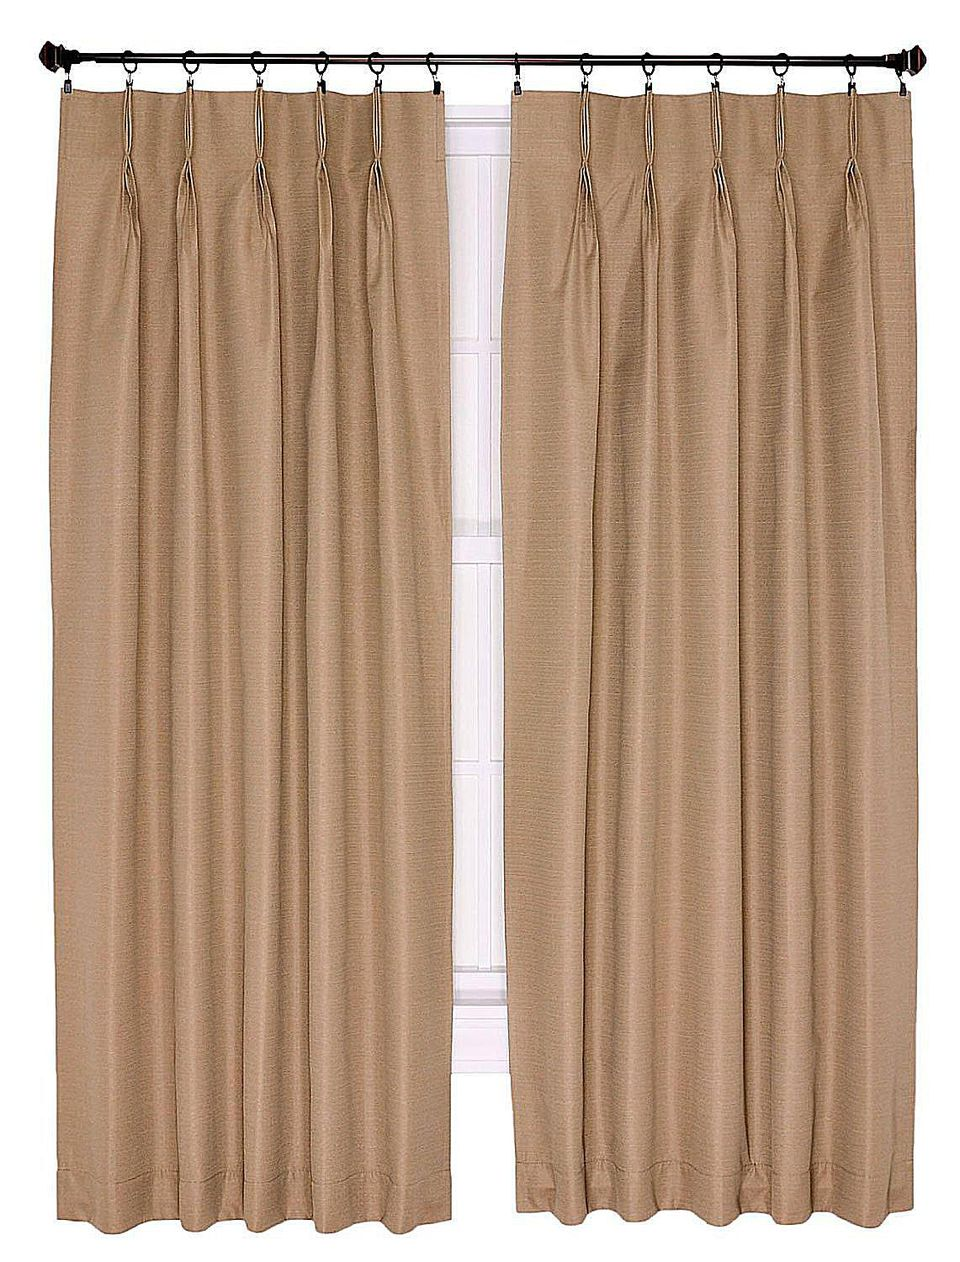 4 popular curtain and drape panel styles for Different styles of drapes